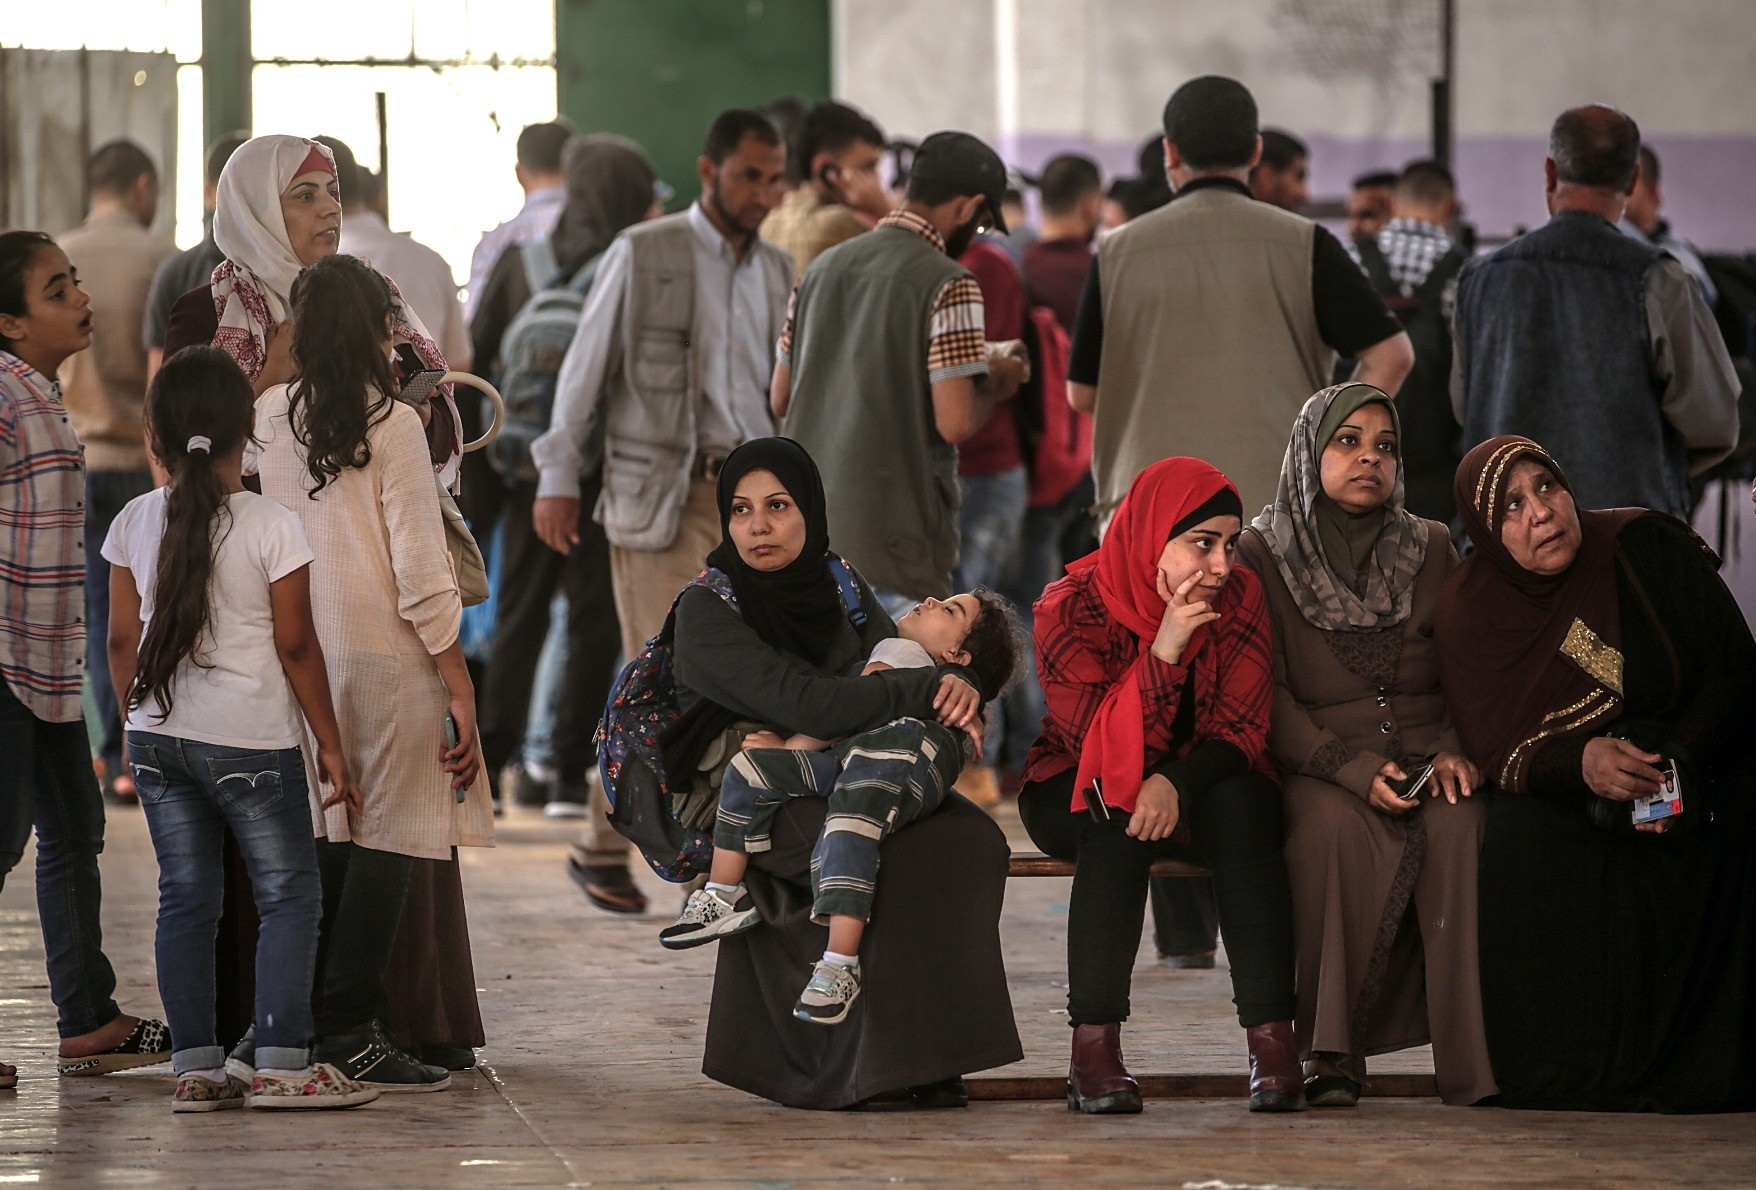 Besieged Palestinians wait to cross Rafah border with Egypt in order to access health care and basic goods, Gaza Strip, May 25.